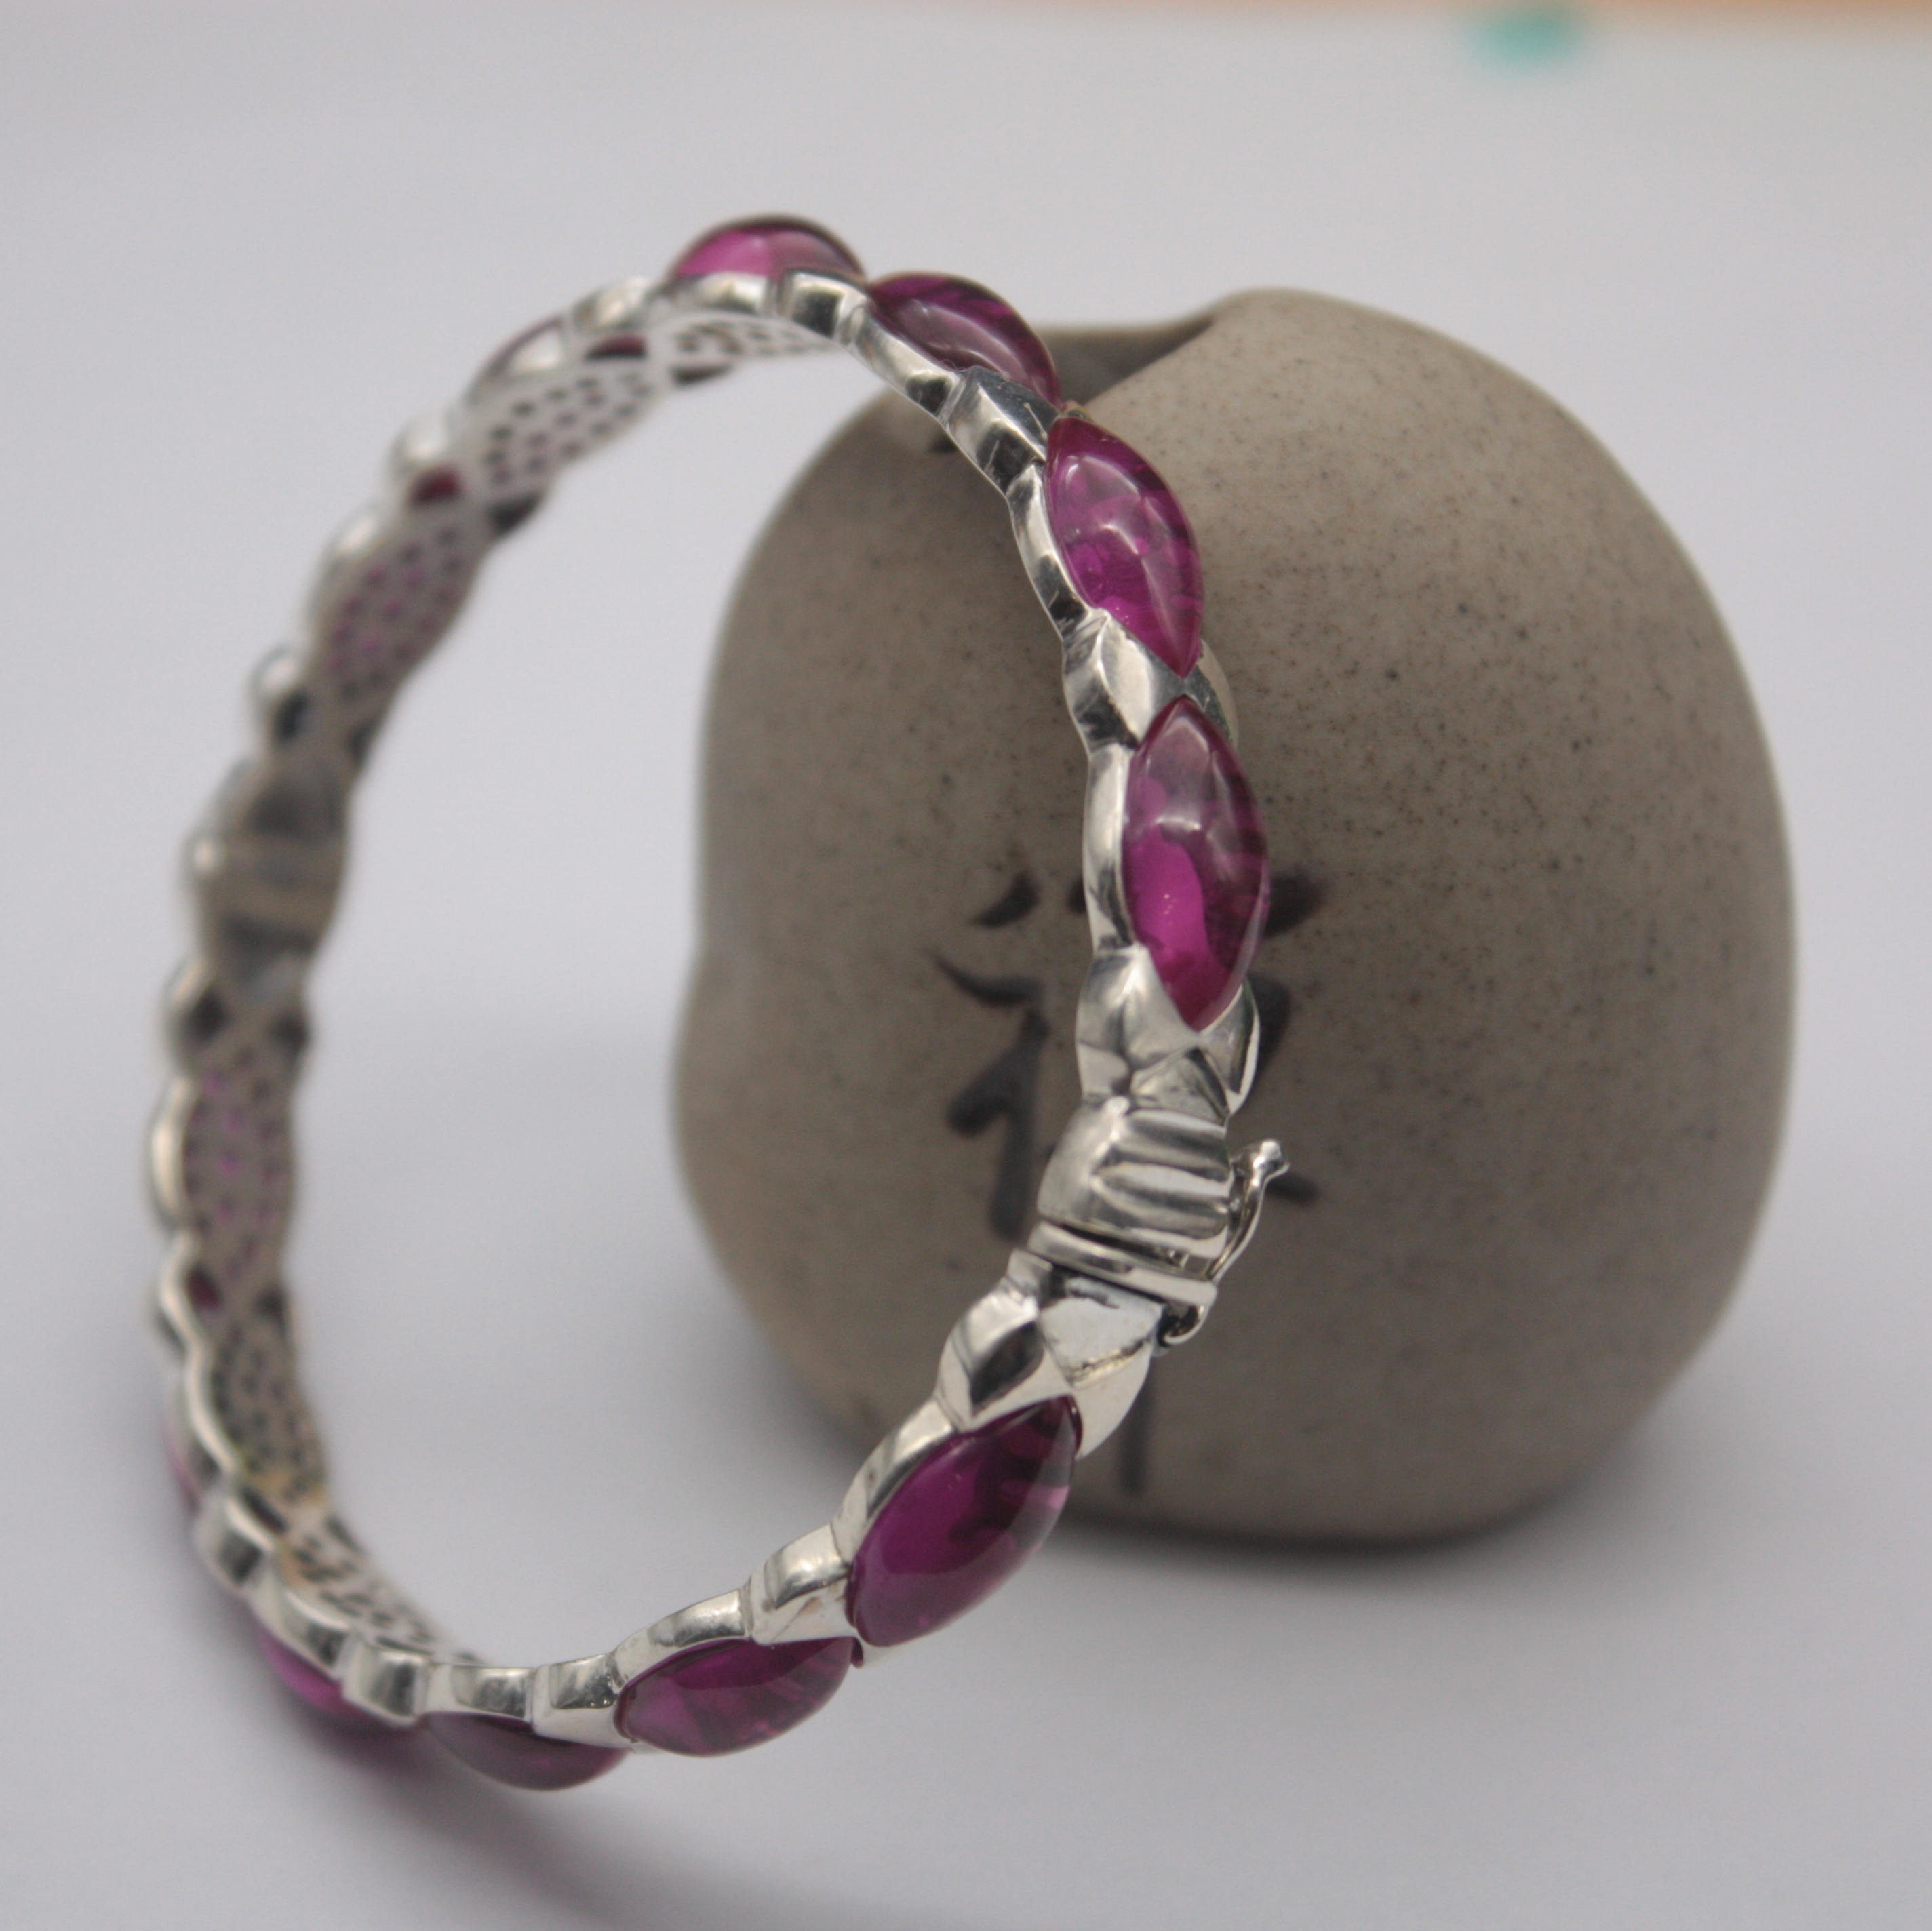 Real S925 Silver Bangle Red Corundum Round Bead Unique Link Women's 54mm Open Bangle Gift Fashion Friend Hot Sale